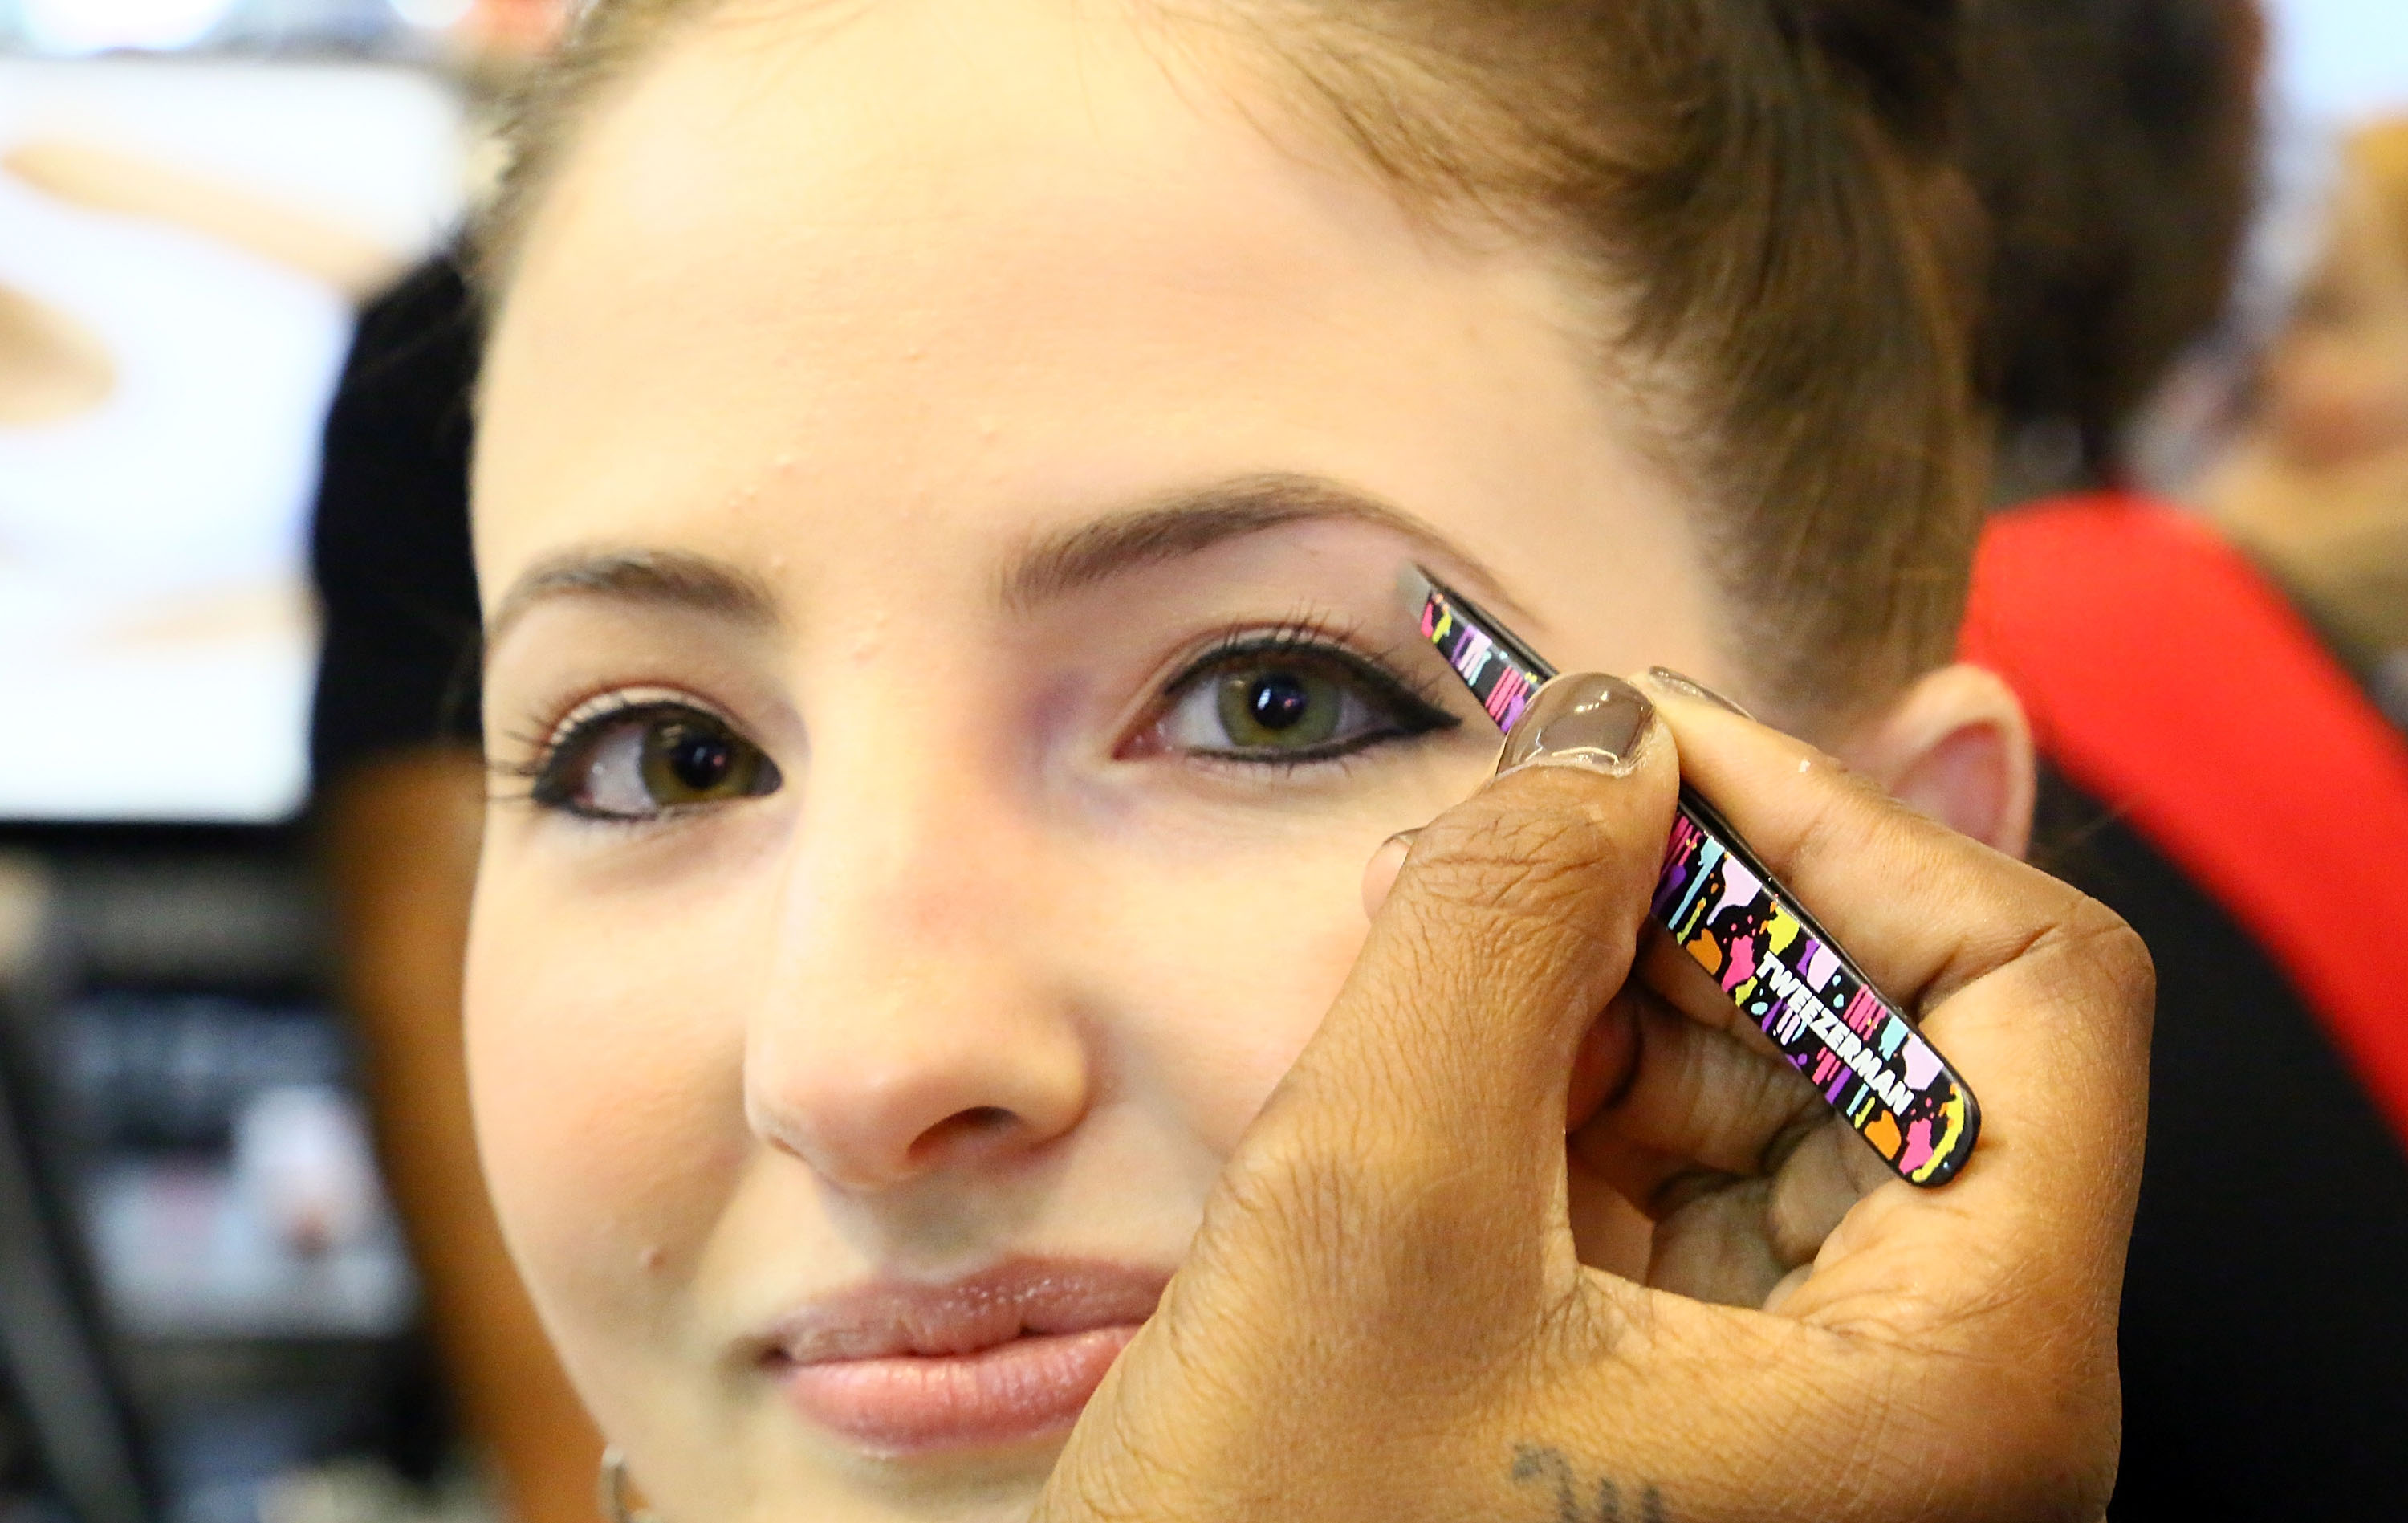 Eyebrow Experts Prefer Tweezing So Stop Waxing And Threading